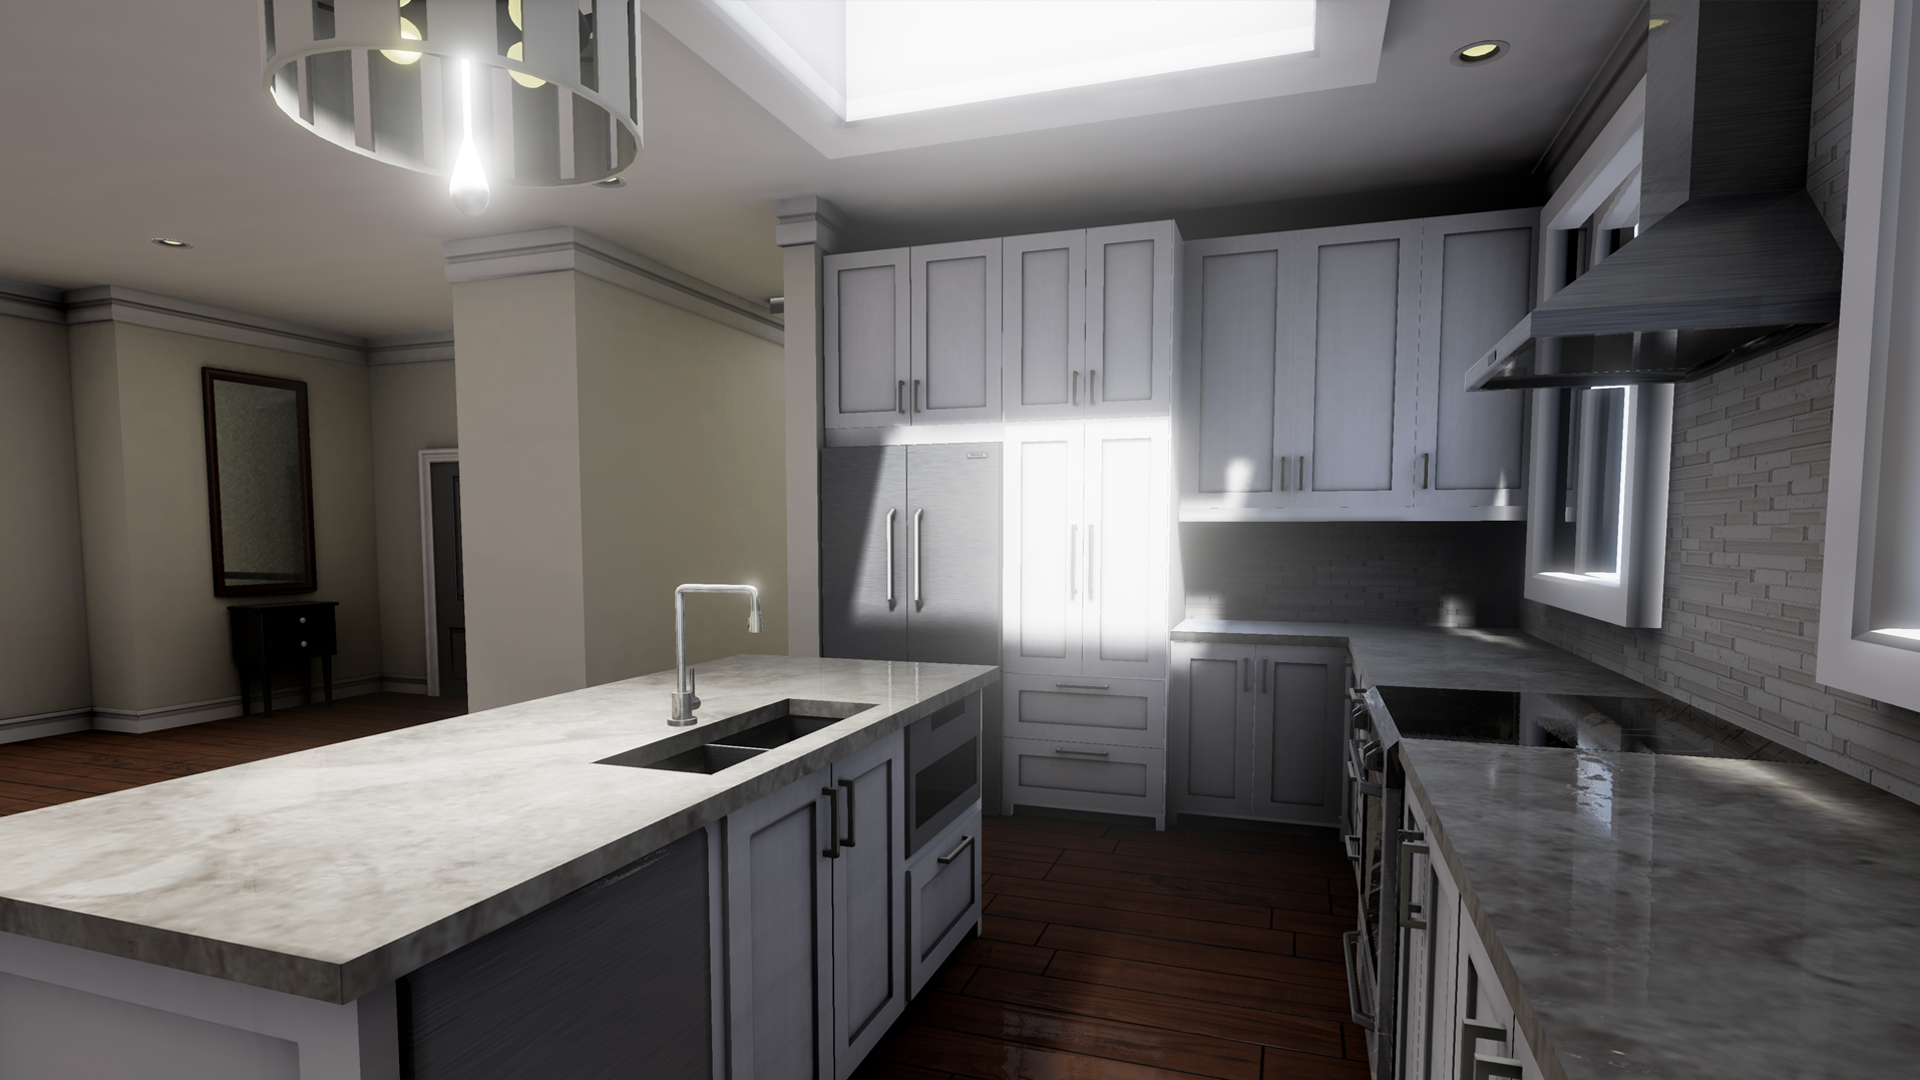 Rendering still images in UE4